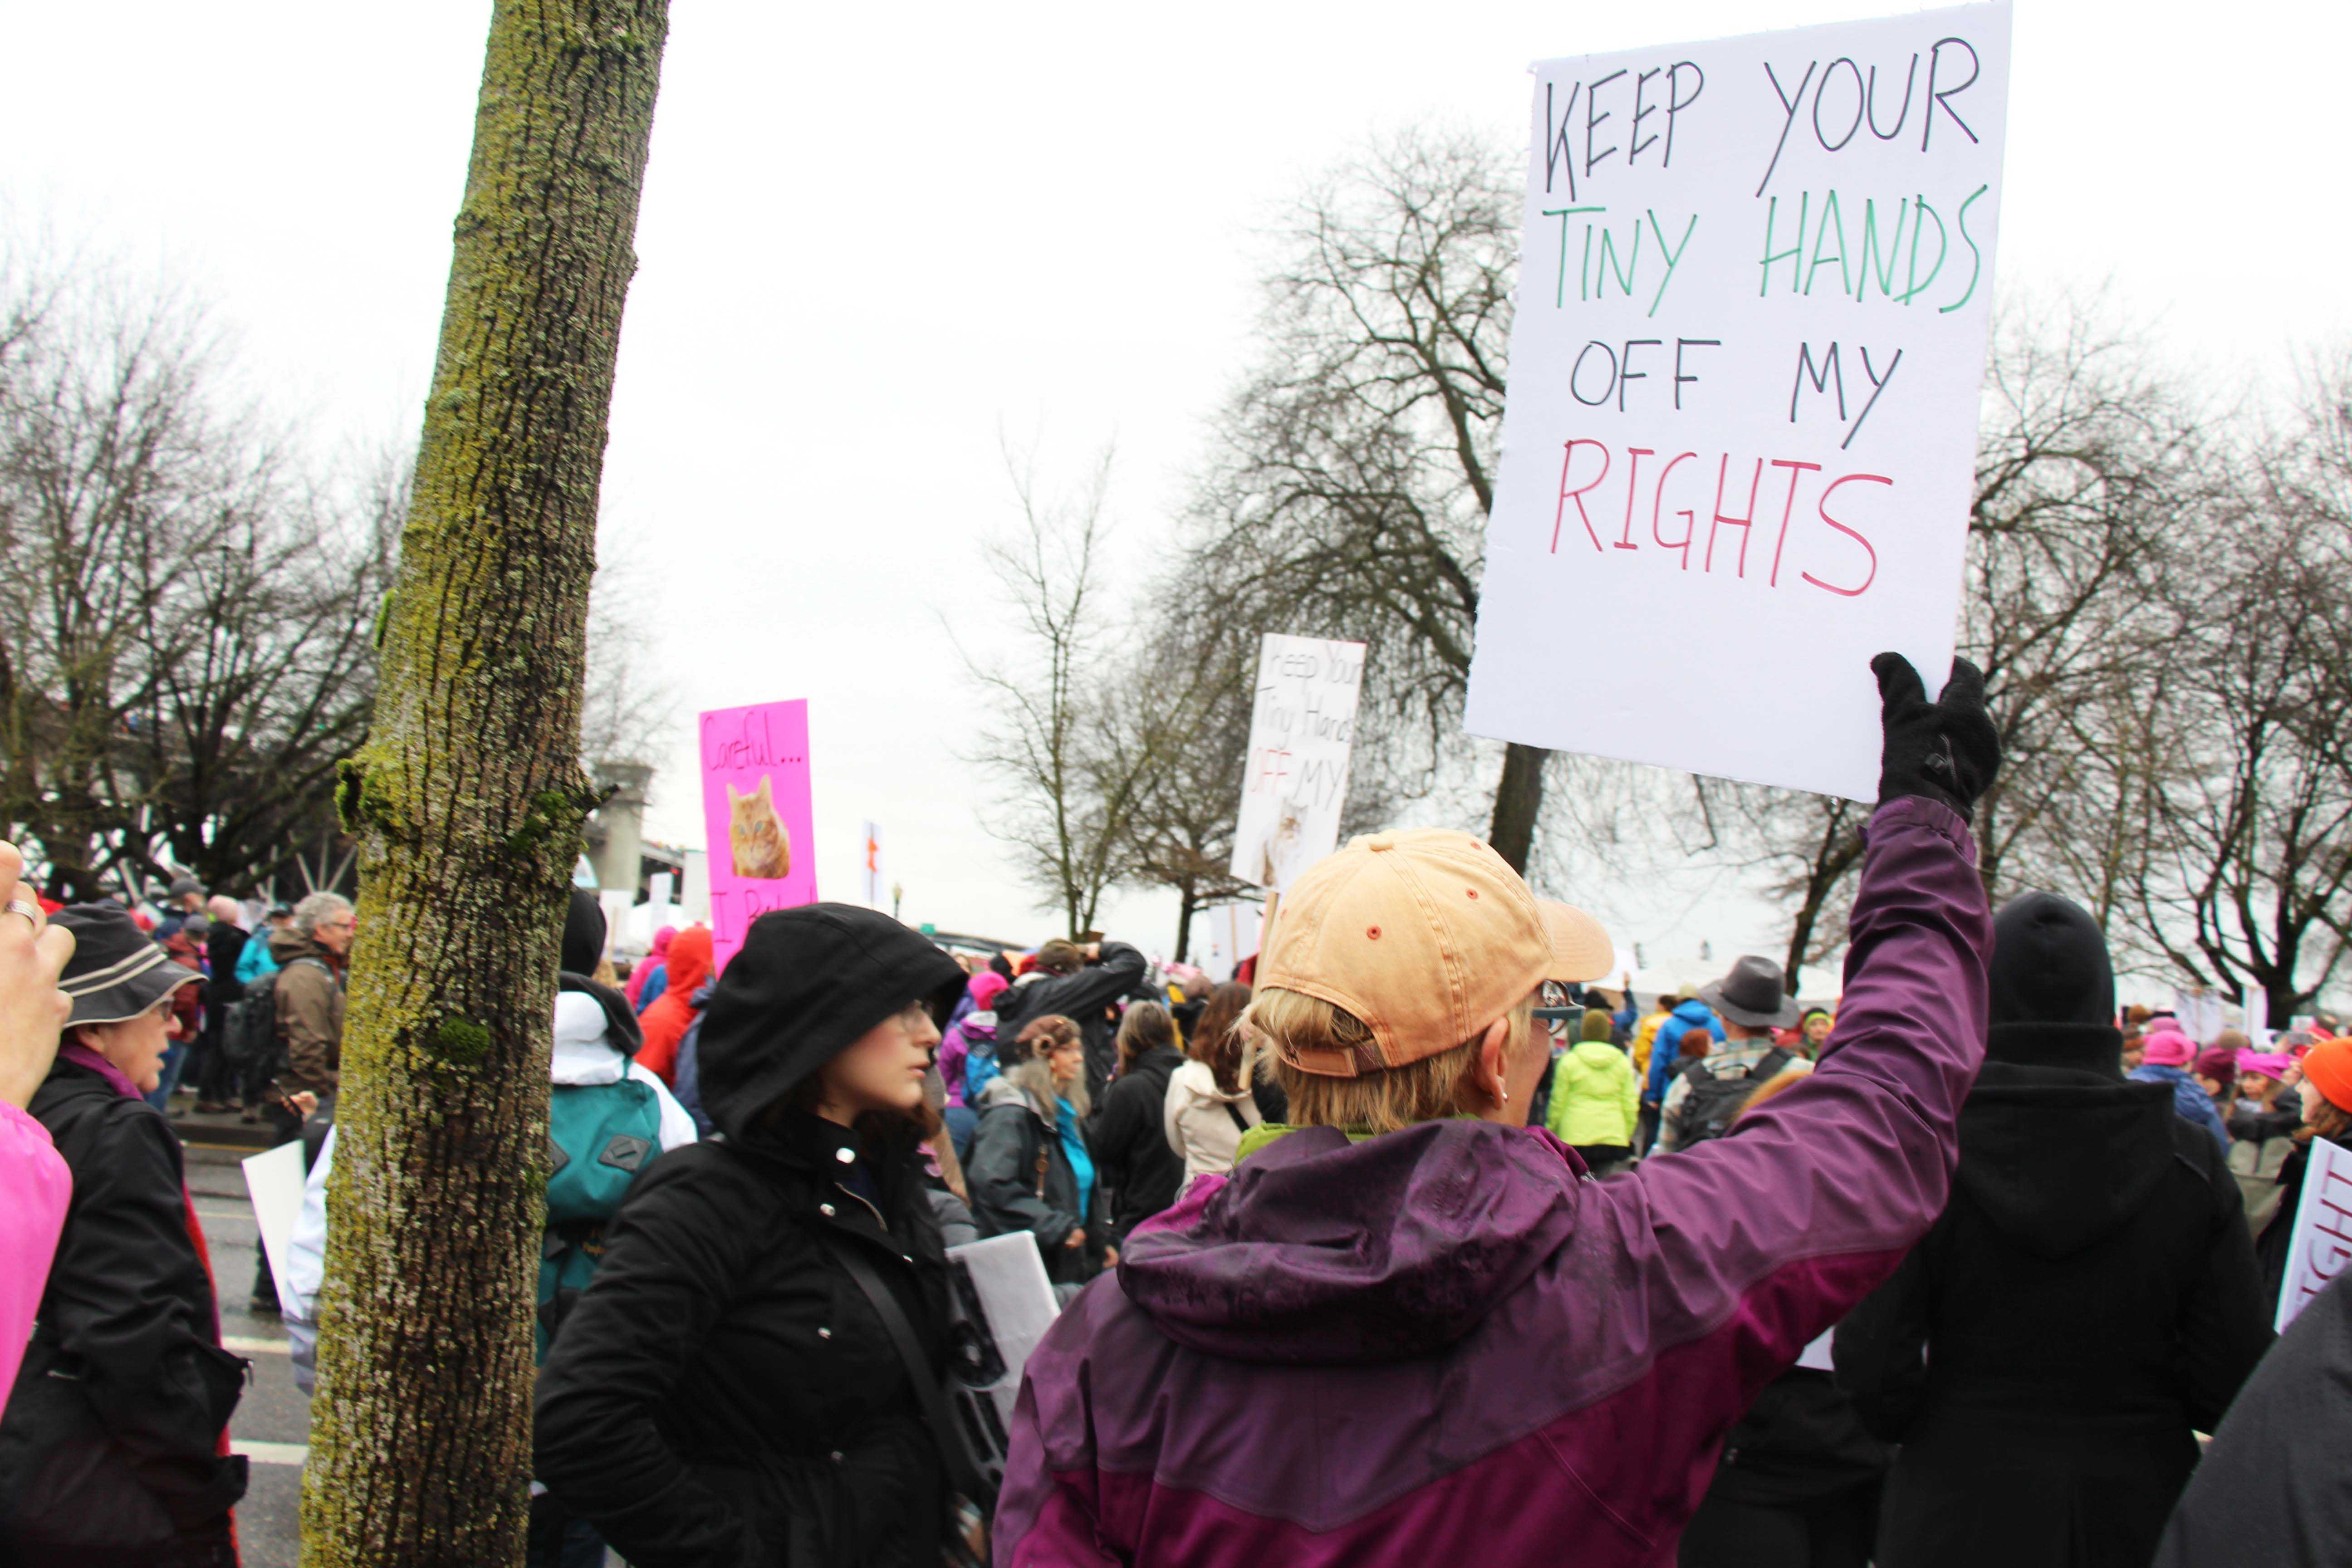 Protesters swarm the streets of Portland after the election of President Donald Trump during the Women's March.  They protest his abilities to lead our country and his policies surrounding human rights.